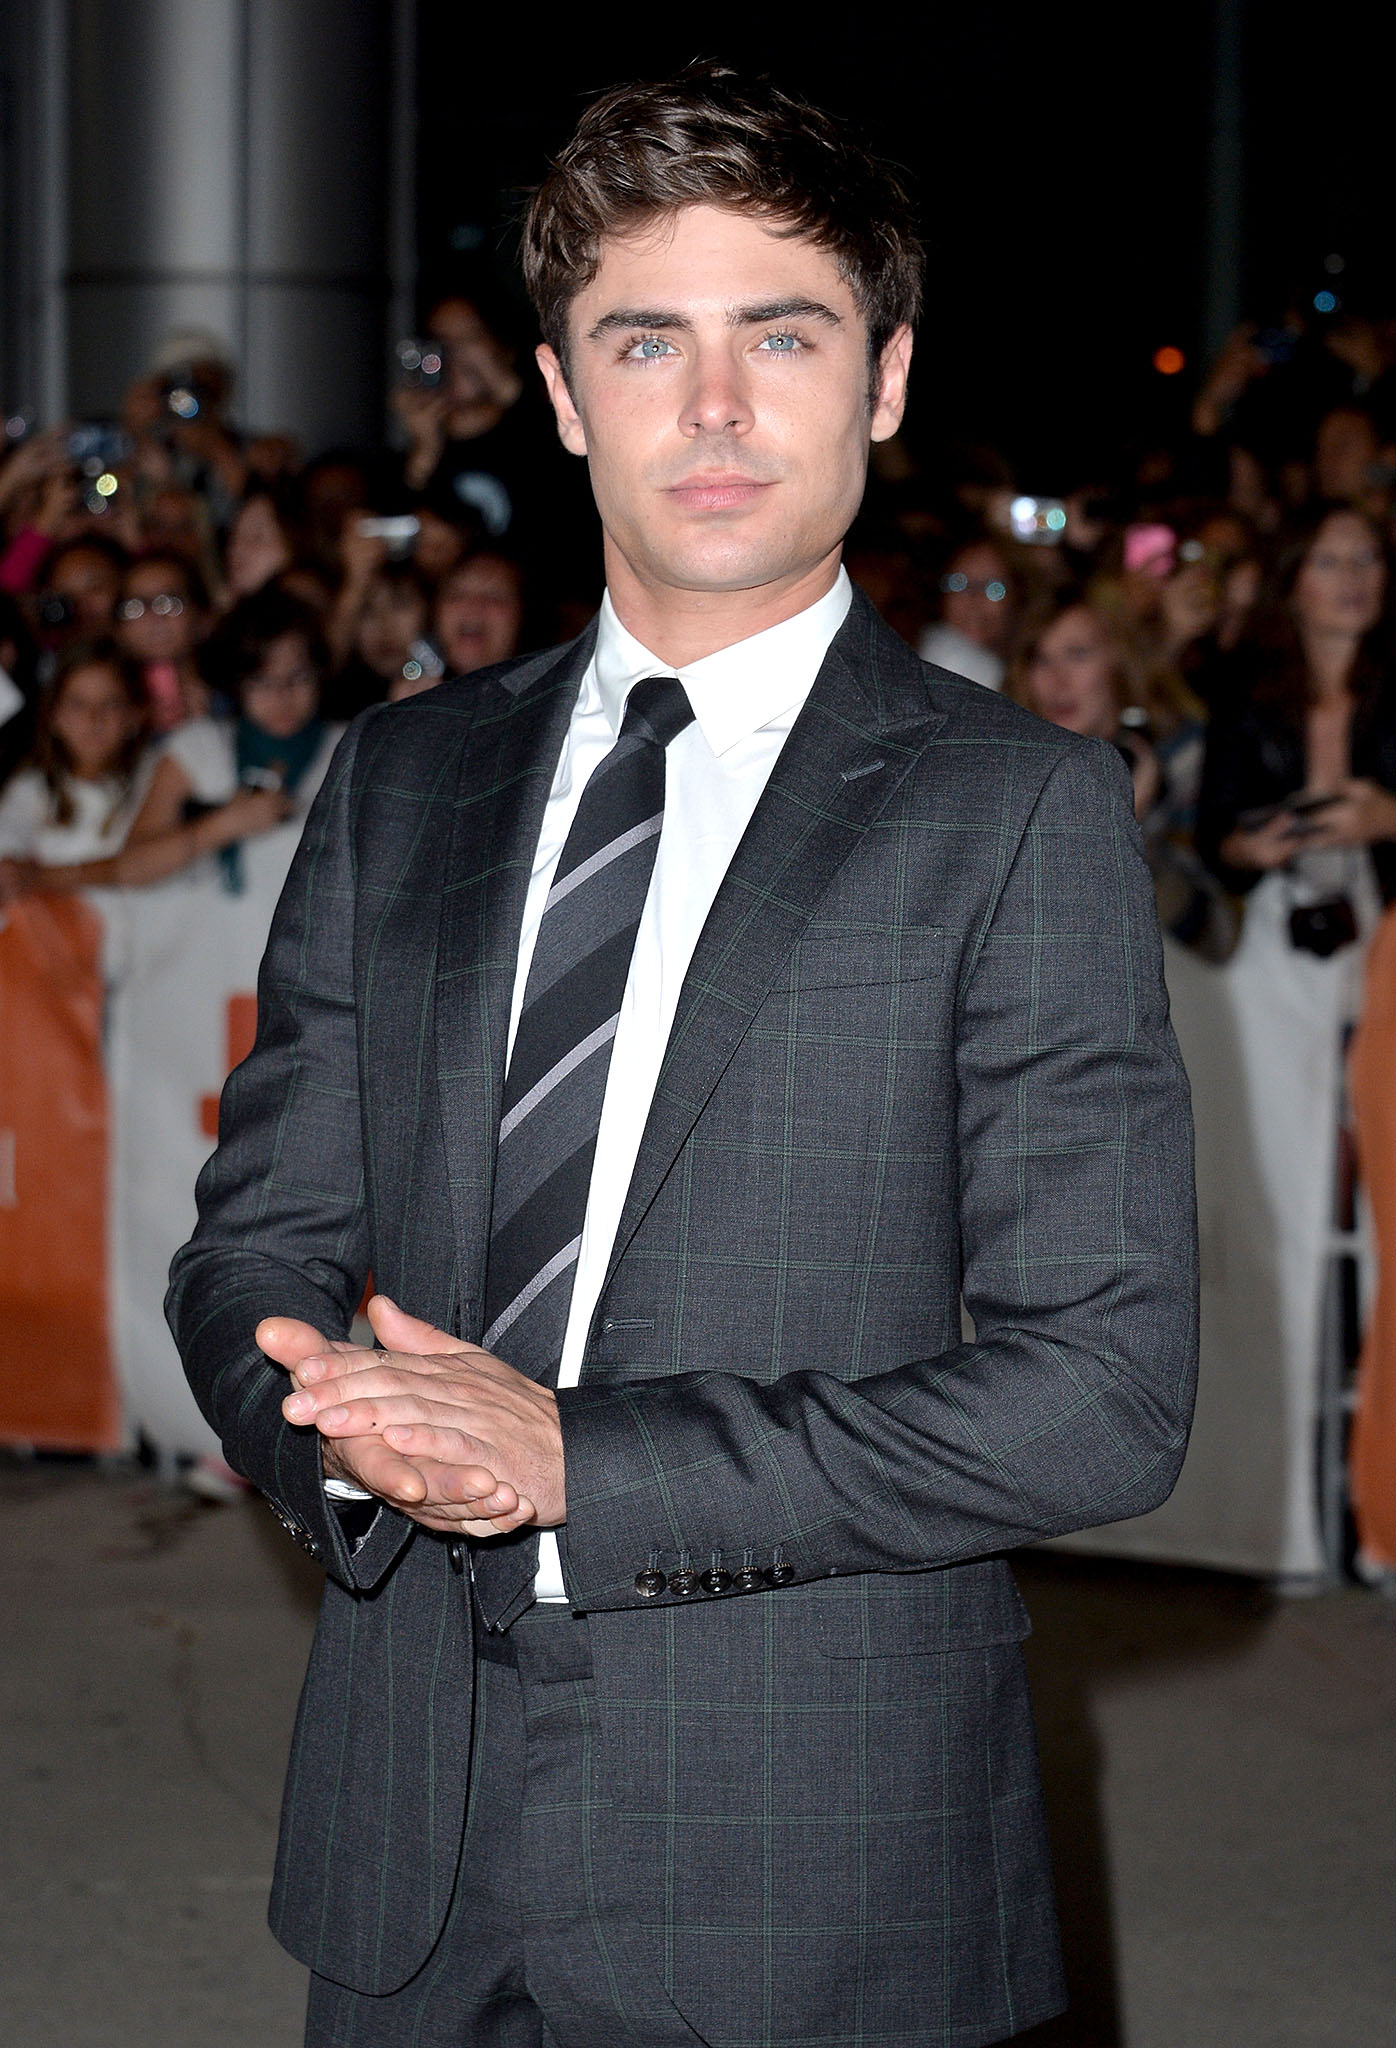 Zac Efron at TIFF on September 6, 2013 (Getty Images)